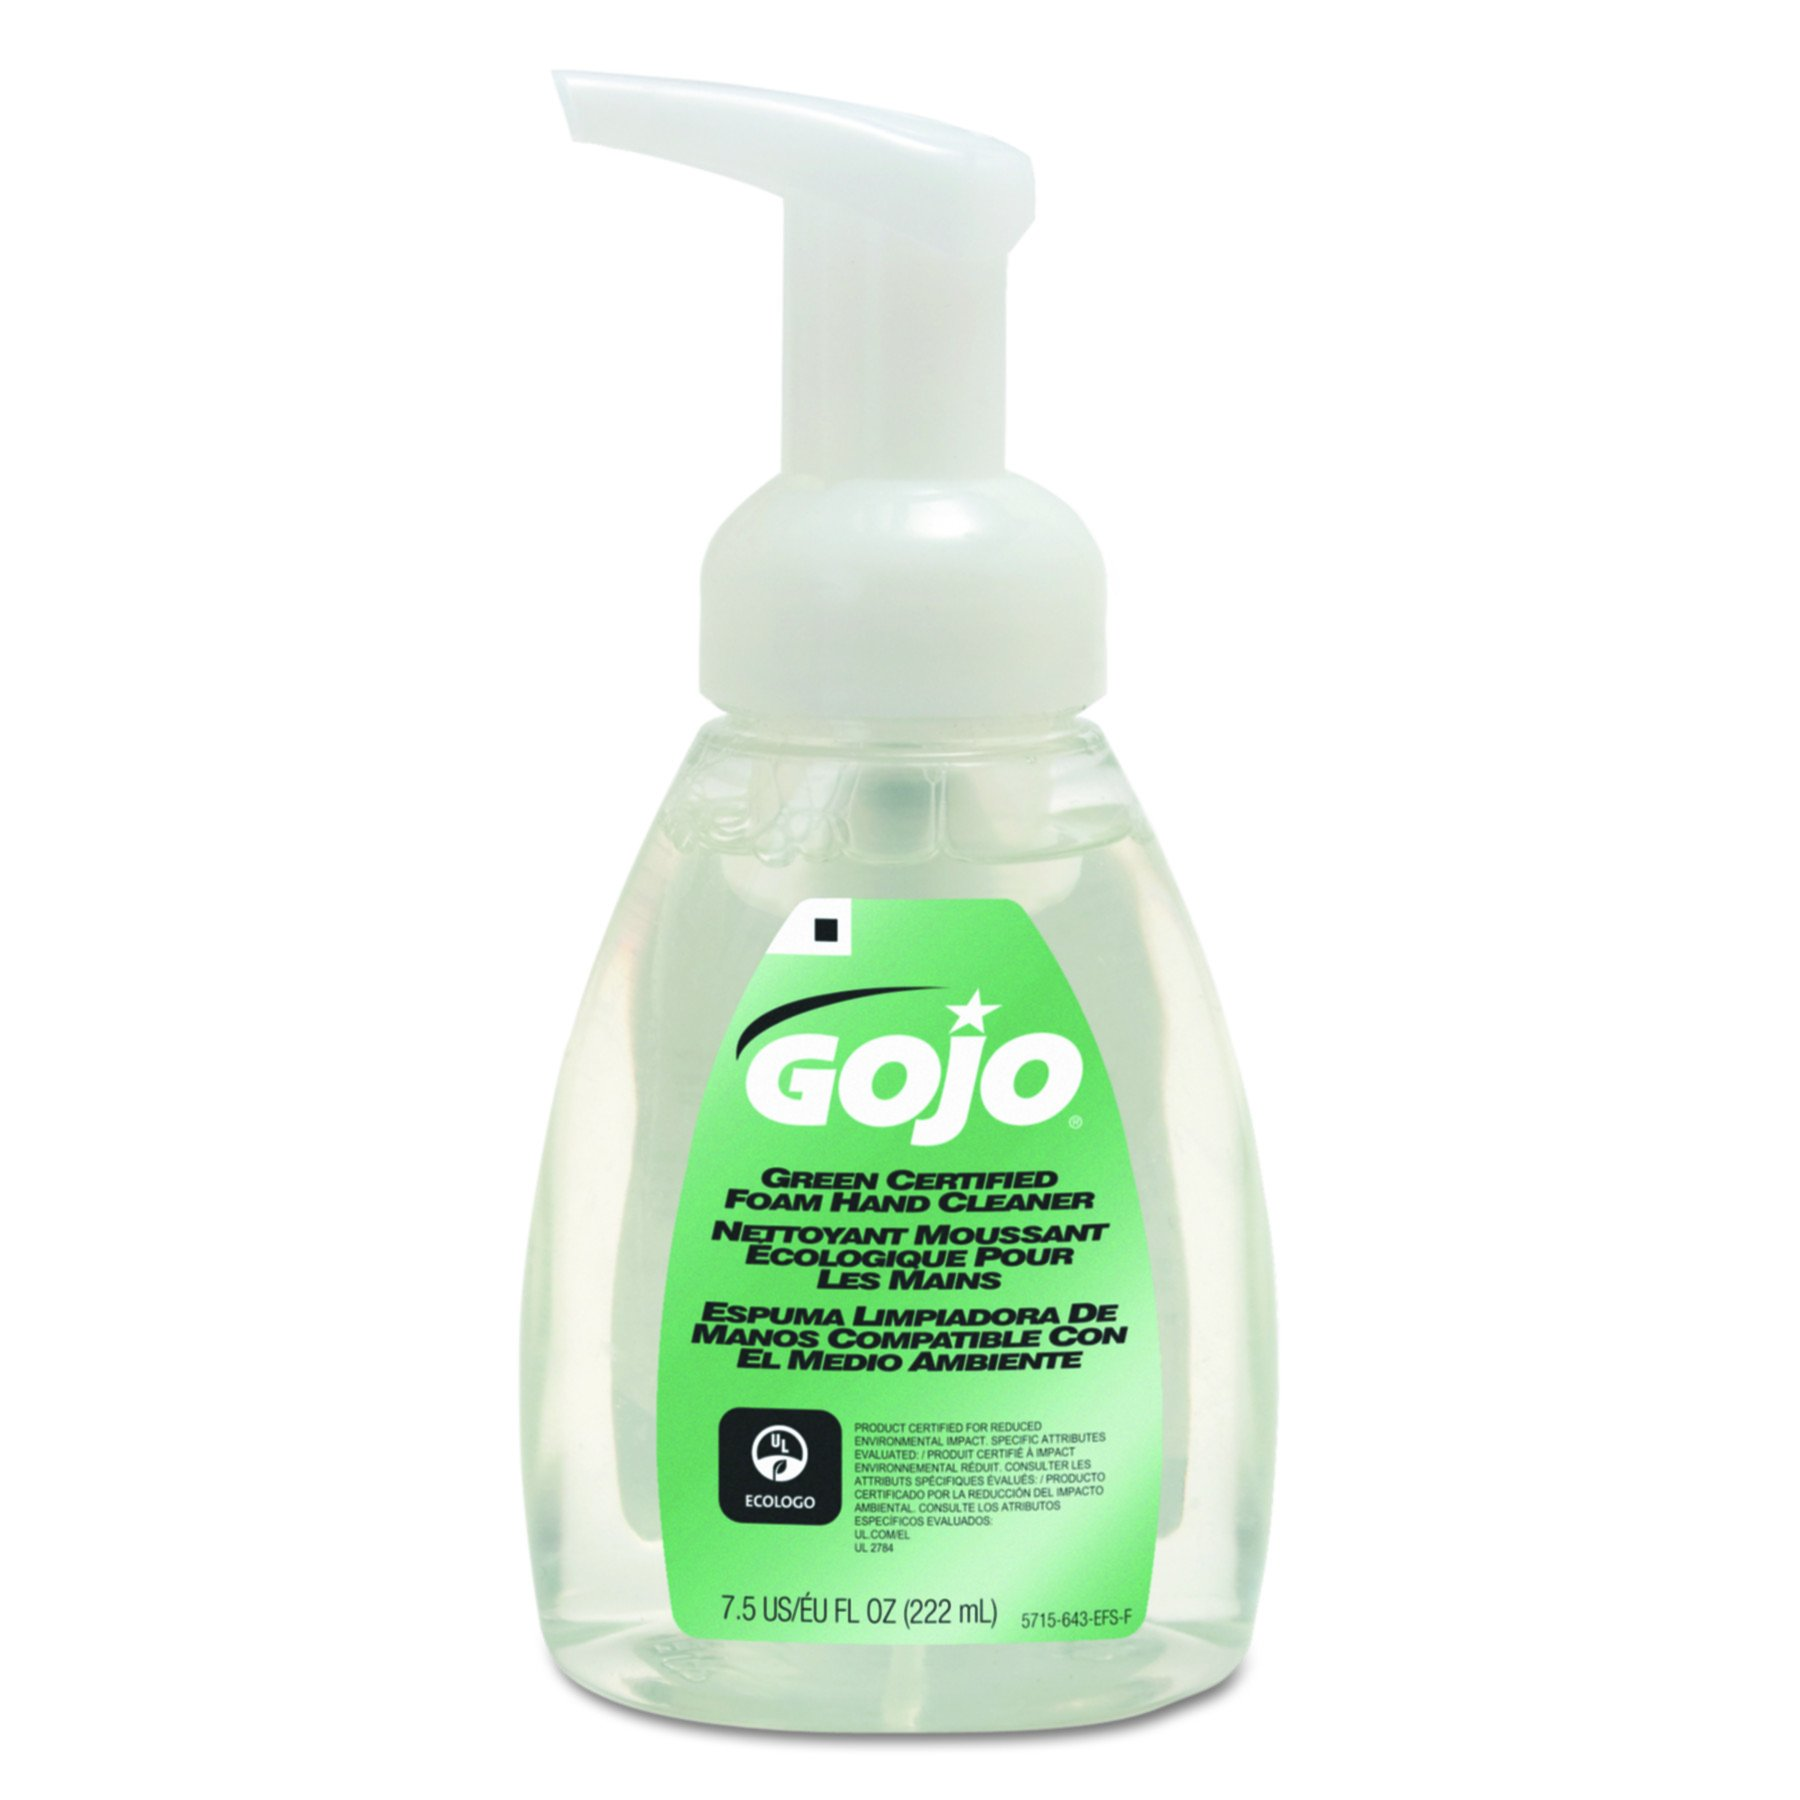 GOJO 571506CT Green Certified Foam Soap, Fragrance-Free, Clear, 7.5 oz. Pump Bottle (Pack of 6) by Gojo